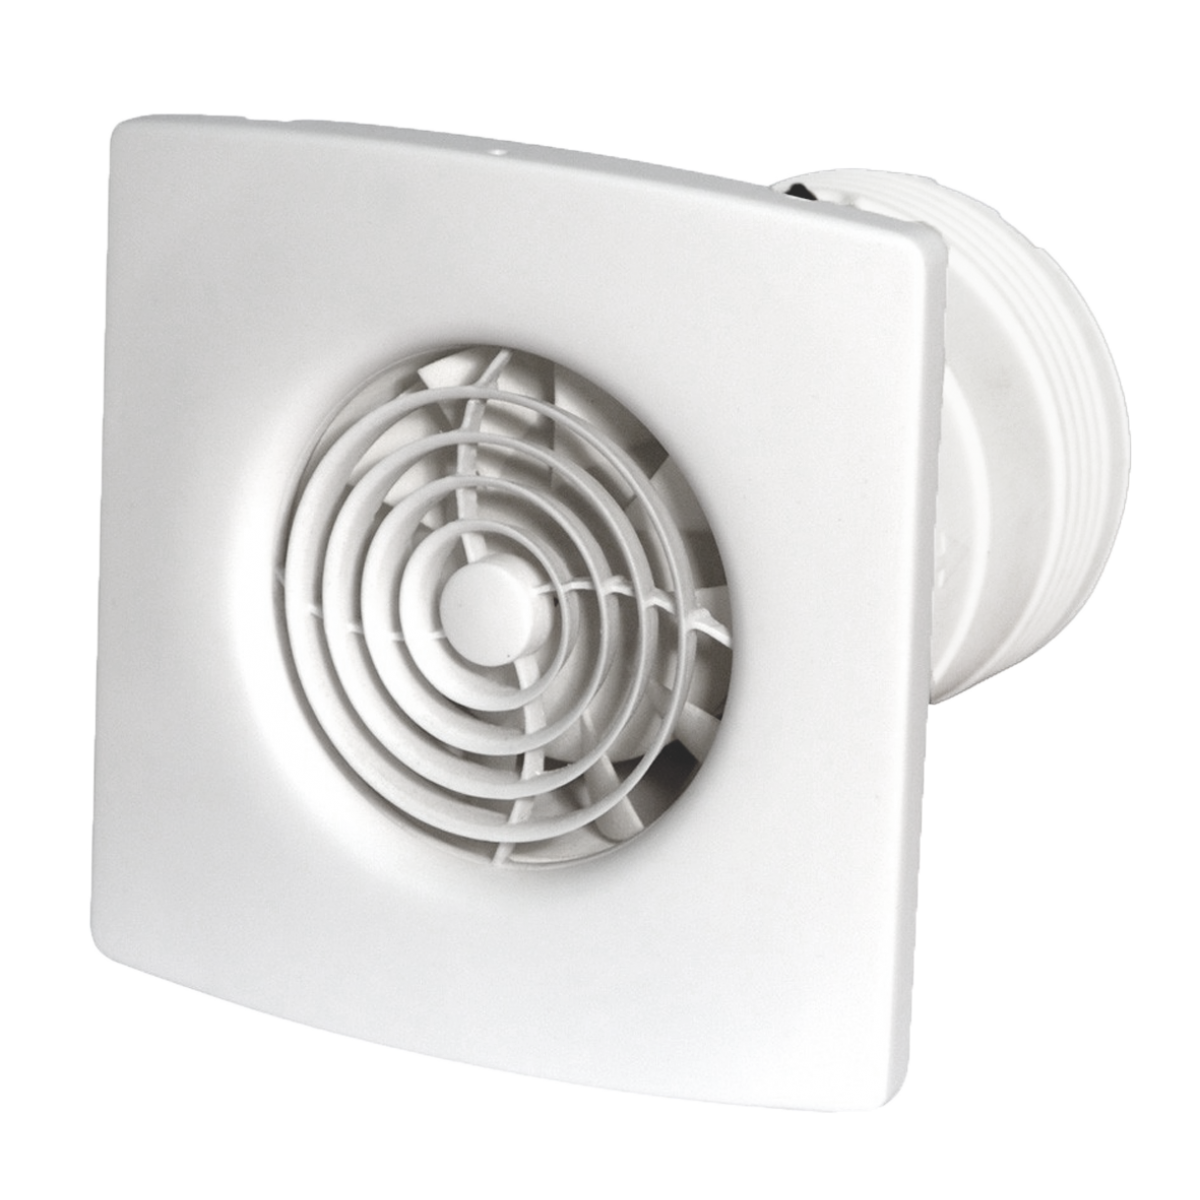 Bathroom Extractor Fan | Greenwood Silent Bathroom Extractor Fan With Timer Sr100tr